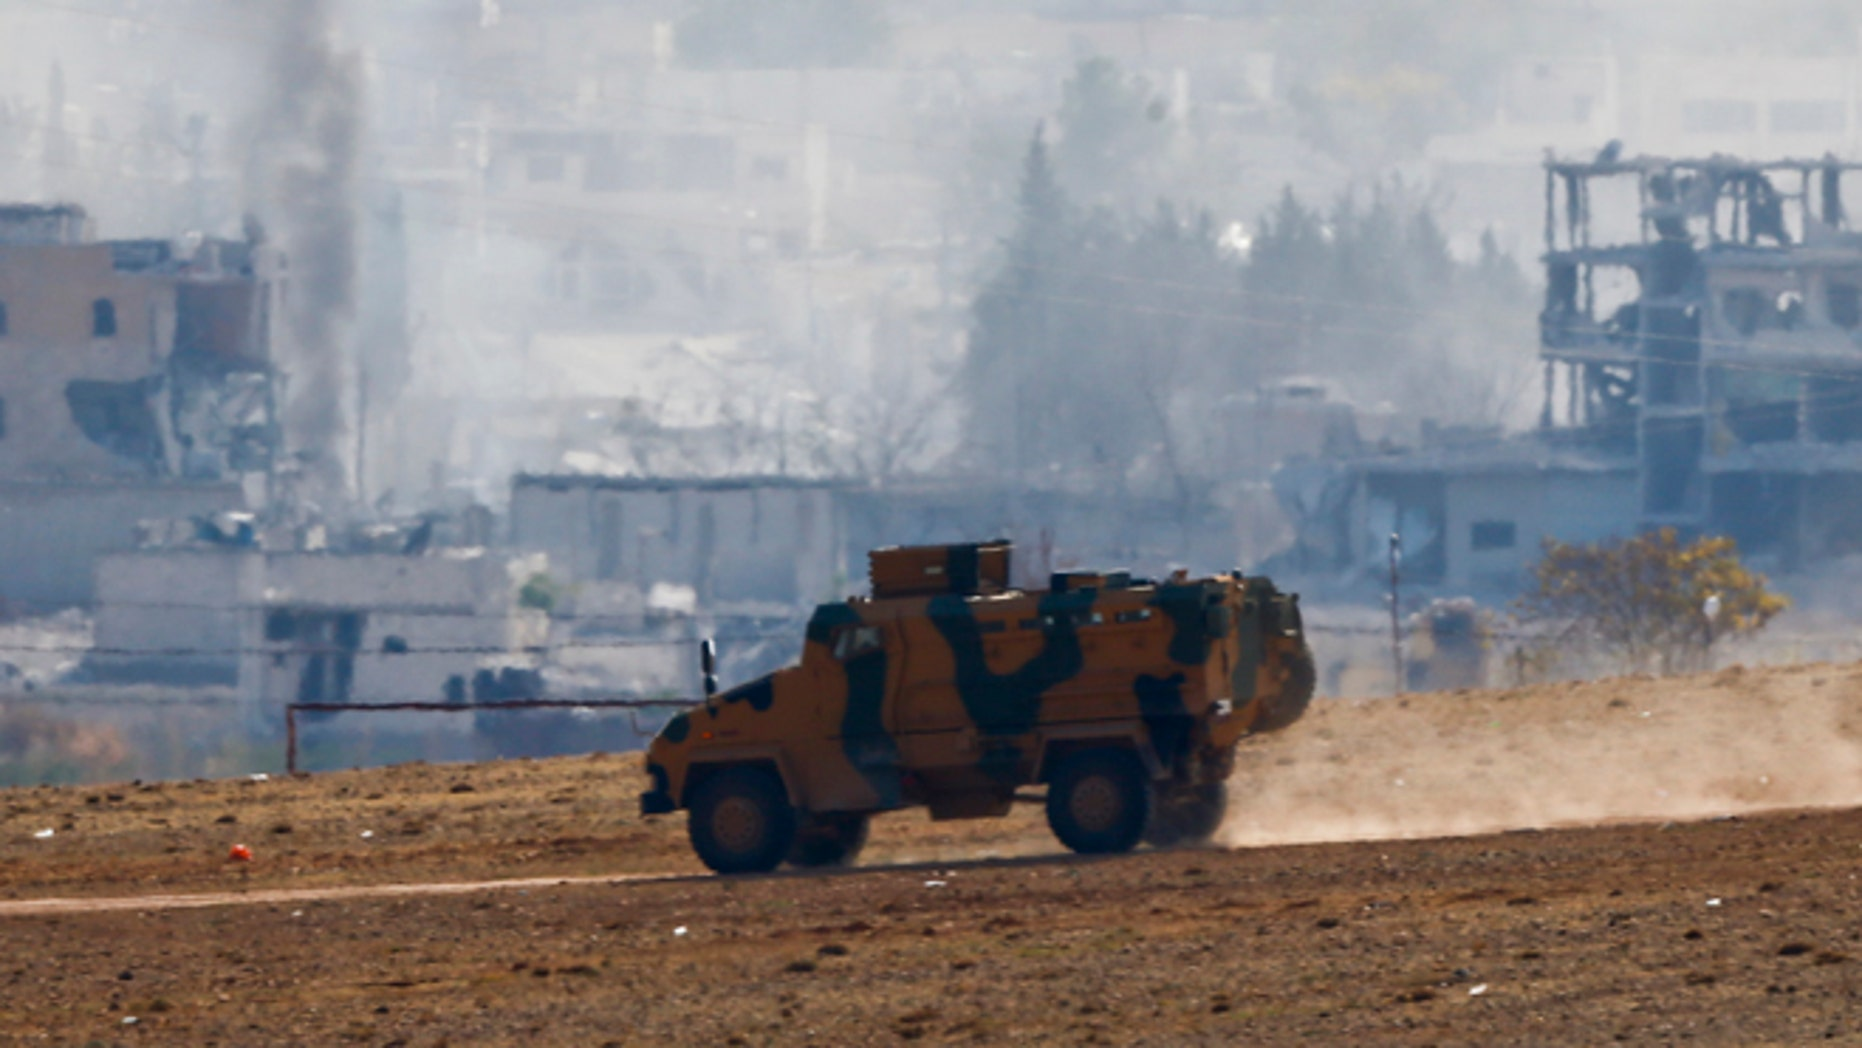 Oct. 29, 2014: Smoke rises from the Syrian town of Kobani as a Turkish army vehicle takes position near the Mursitpinar border crossing on the Turkish-Syrian border in the southeastern town of Suruc in Sanliurfa province.